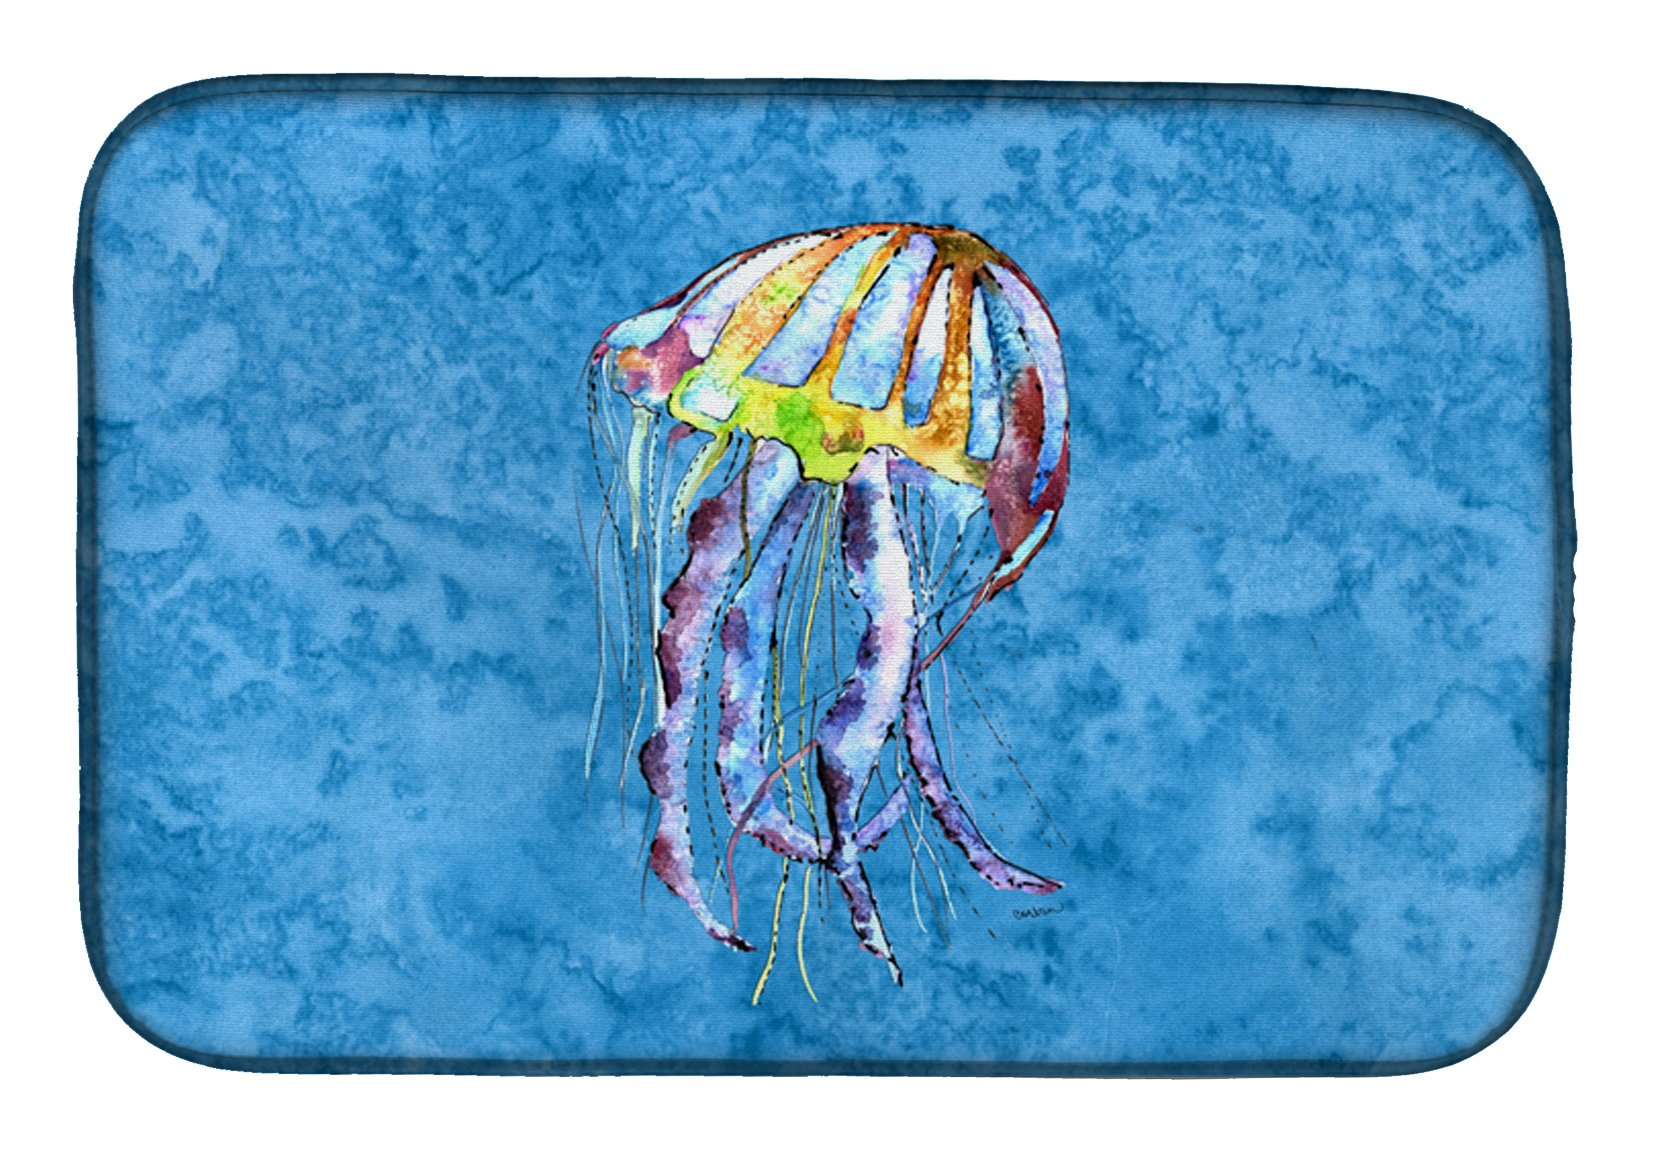 Jellyfish Dish Drying Mat 8682DDM by Caroline's Treasures